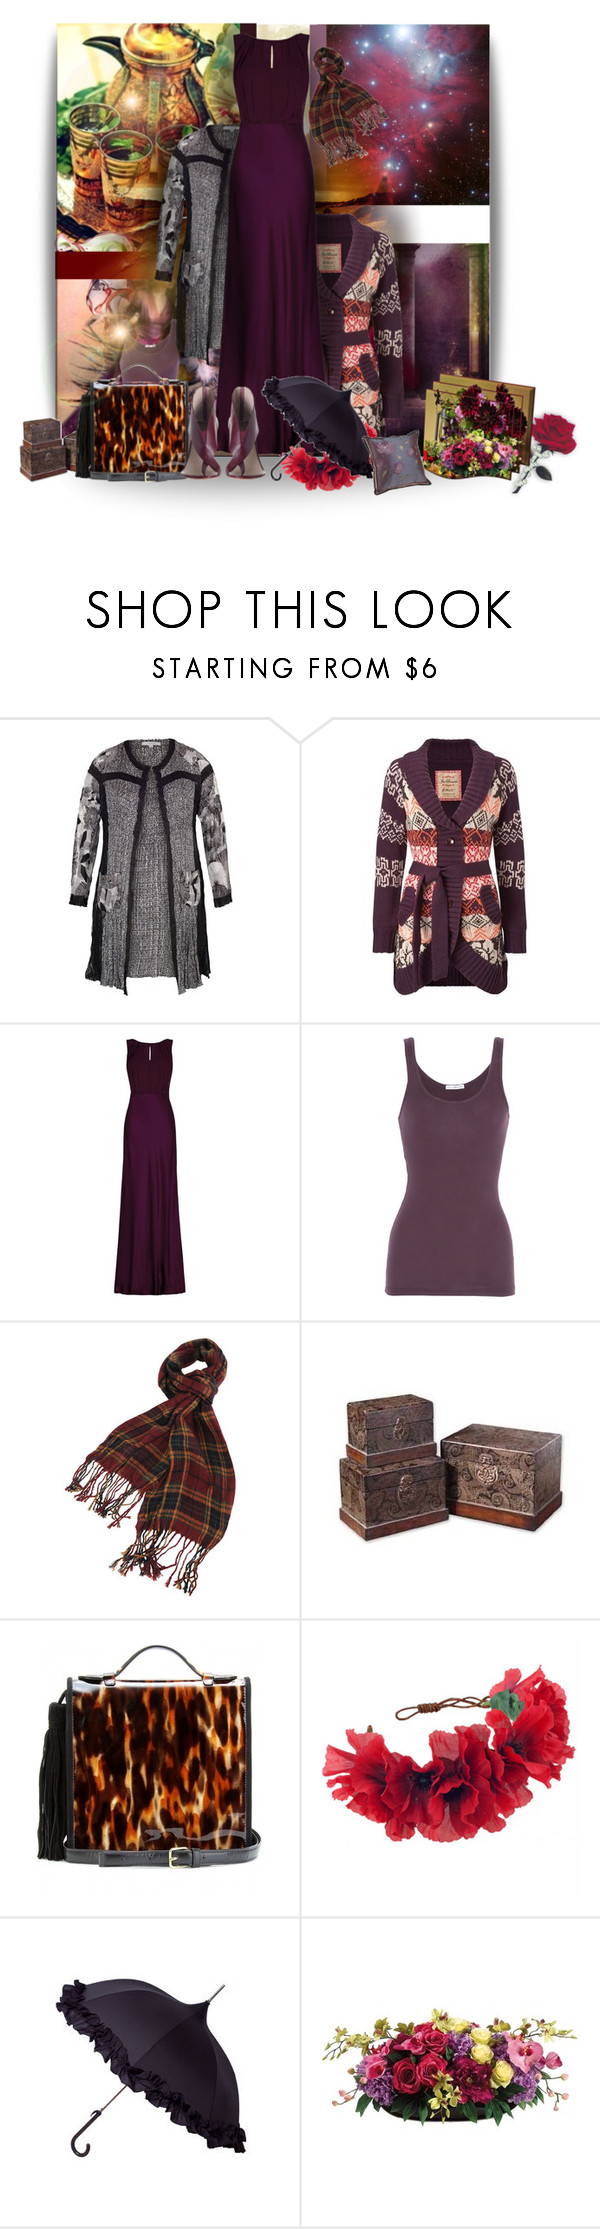 """Untitled #496"" by wildnature ❤ liked on Polyvore featuring Chesca, Joe Browns, Ghost, James Perse, Forever 21, Dries Van Noten, Rock 'N Rose, Allstate Floral, aNYthing and Zimmermann"